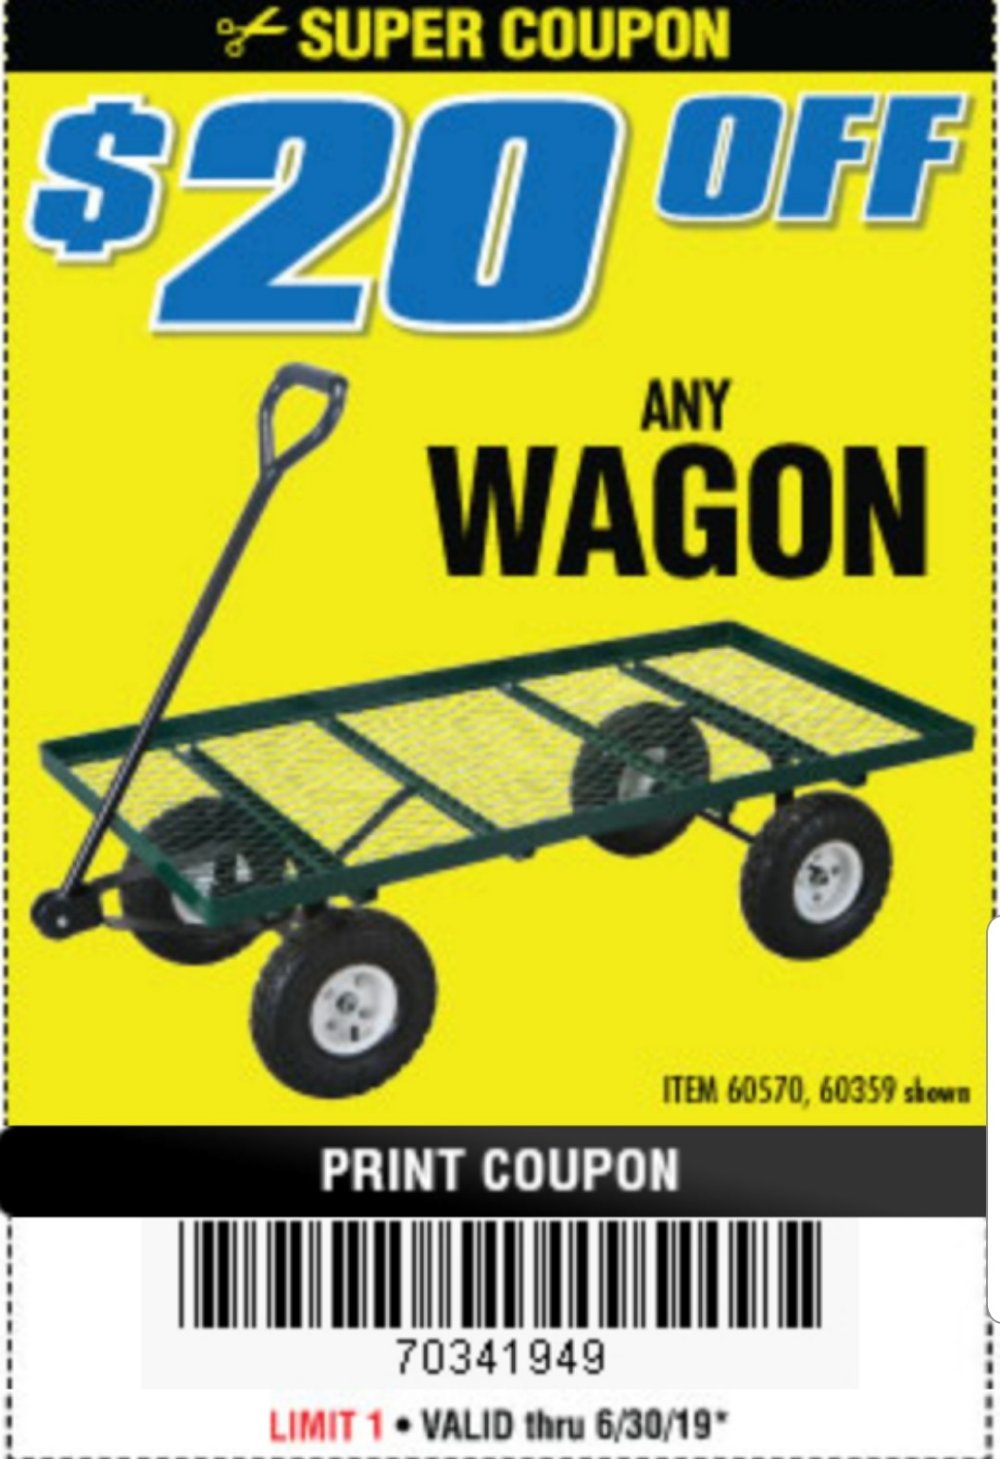 Harbor Freight Coupon, HF Coupons - Bigfoot Panel Wagon